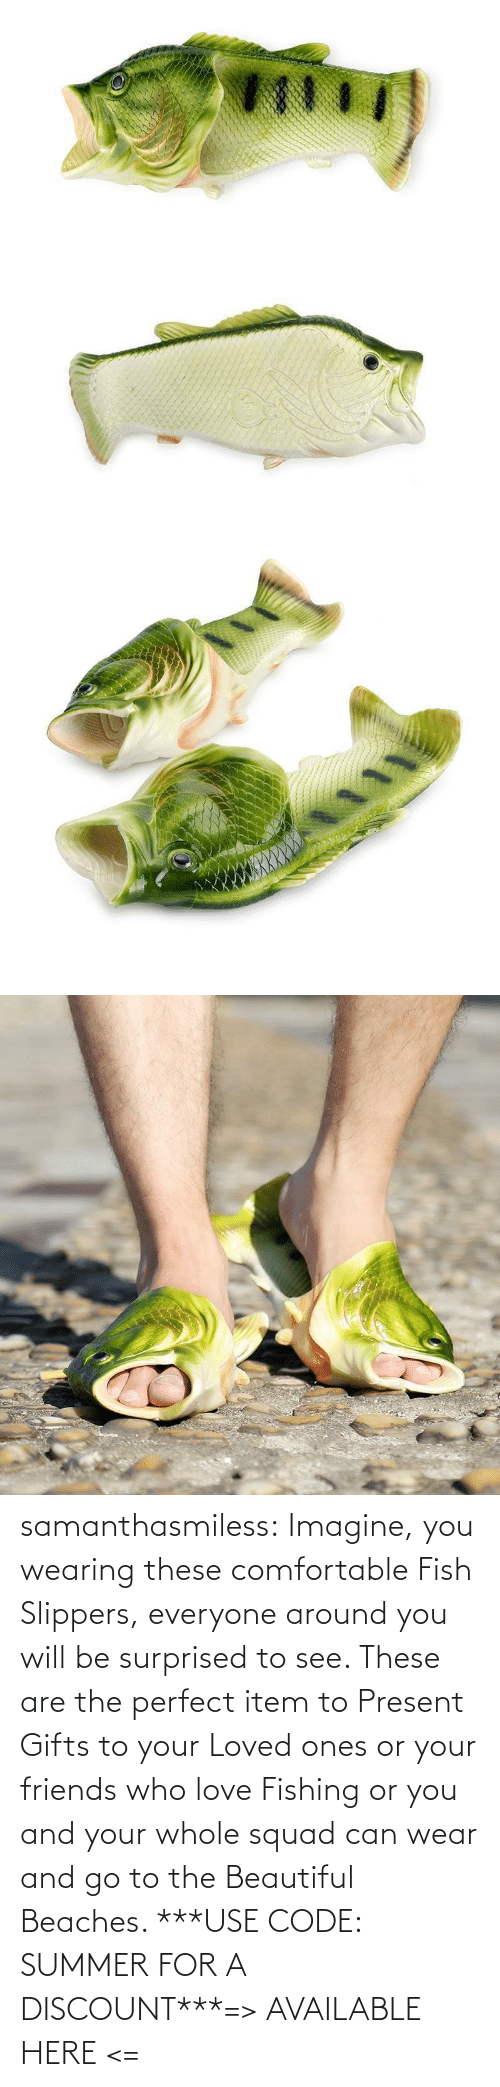 around: samanthasmiless:  Imagine, you wearing these comfortable Fish Slippers, everyone around you will be surprised to see. These are the perfect item to Present Gifts to your Loved ones or your friends who love Fishing or you and your whole squad can wear and go to the Beautiful Beaches. ***USE CODE: SUMMER FOR A DISCOUNT***=> AVAILABLE HERE <=